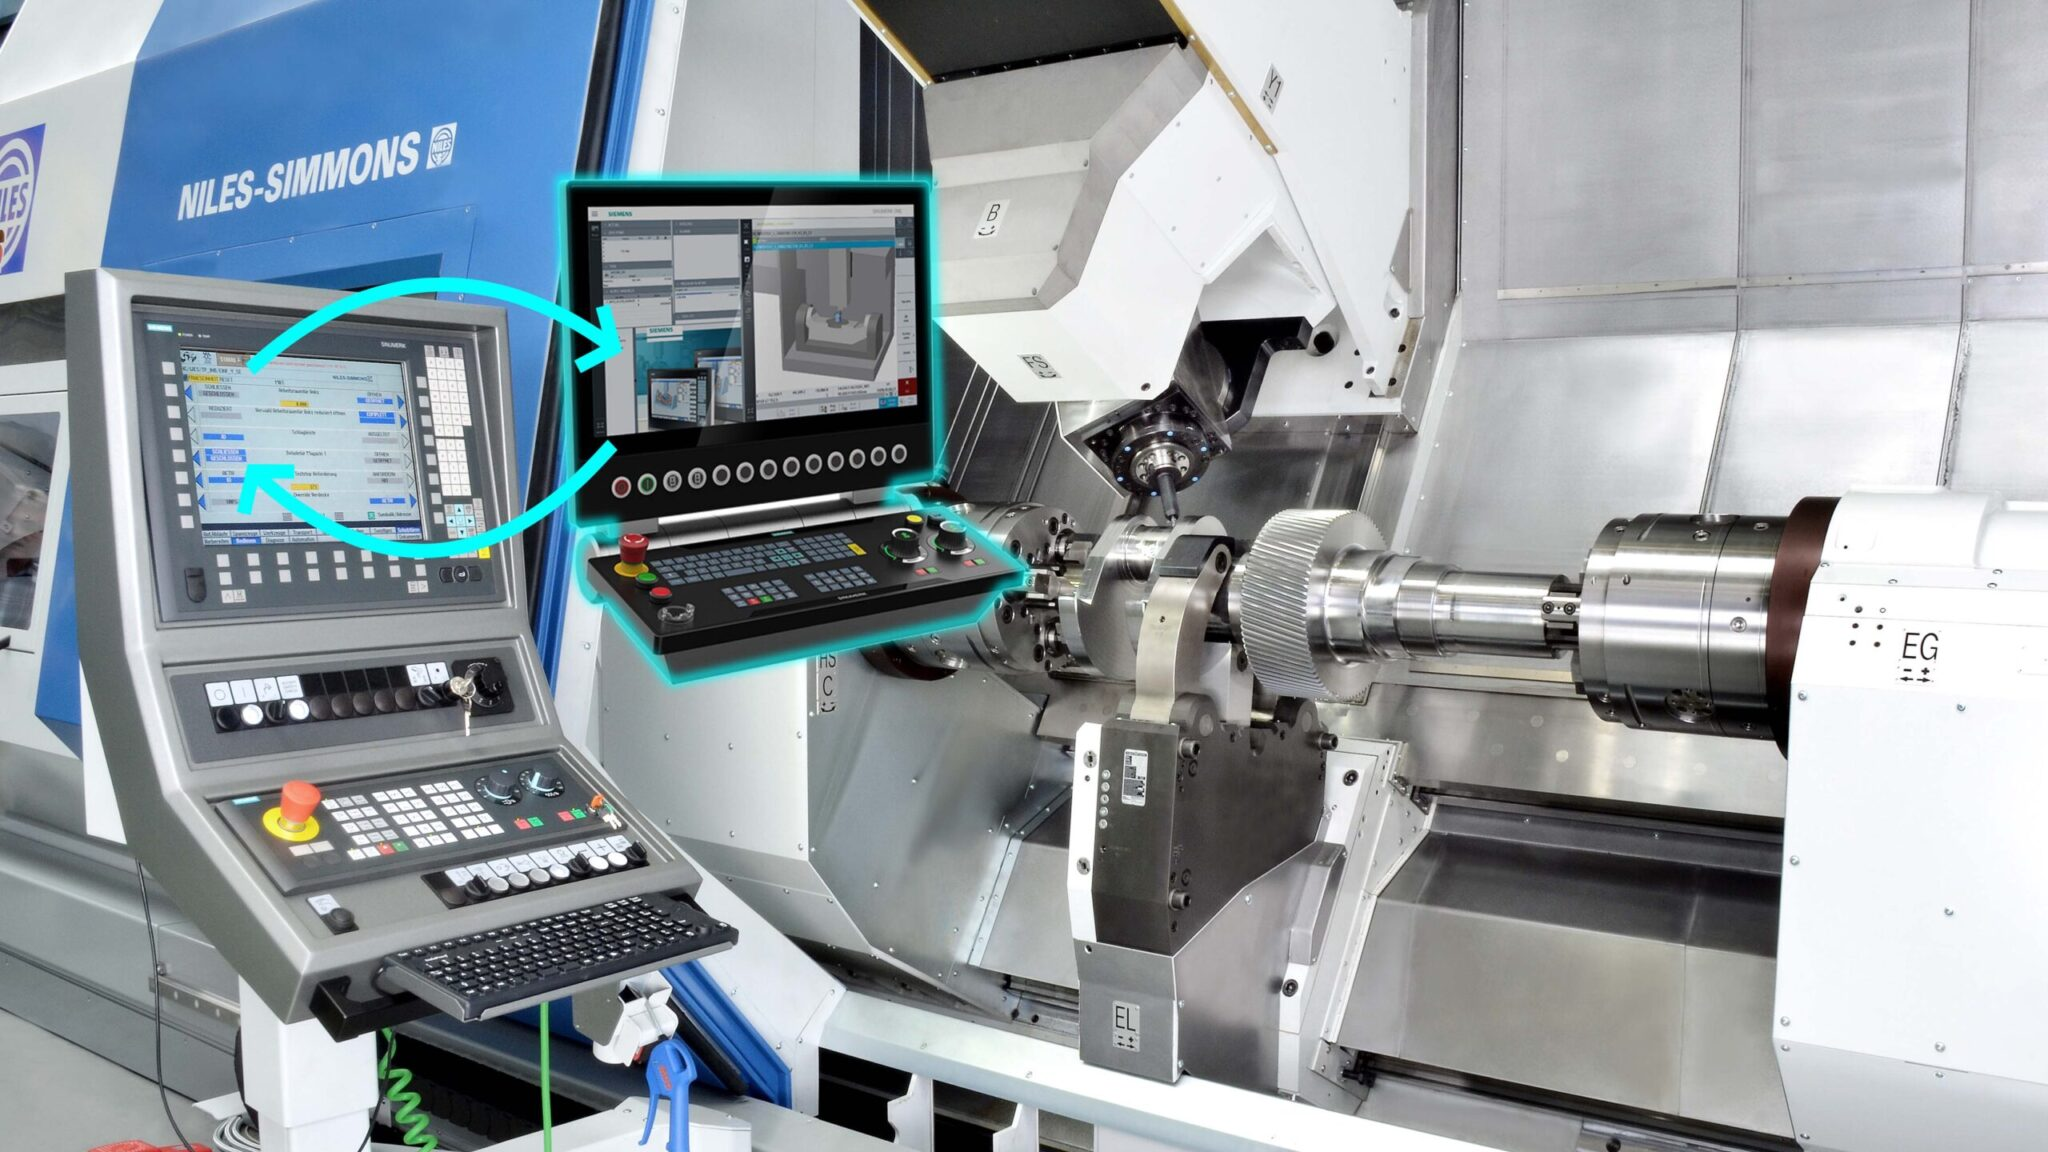 Werkzeugmaschinen Service: Steuerungs-Upgrade / Machine tool service: Controls-Upgrade / станков Сервис: МОДЕРНИЗАЦИЯ СЧПУ